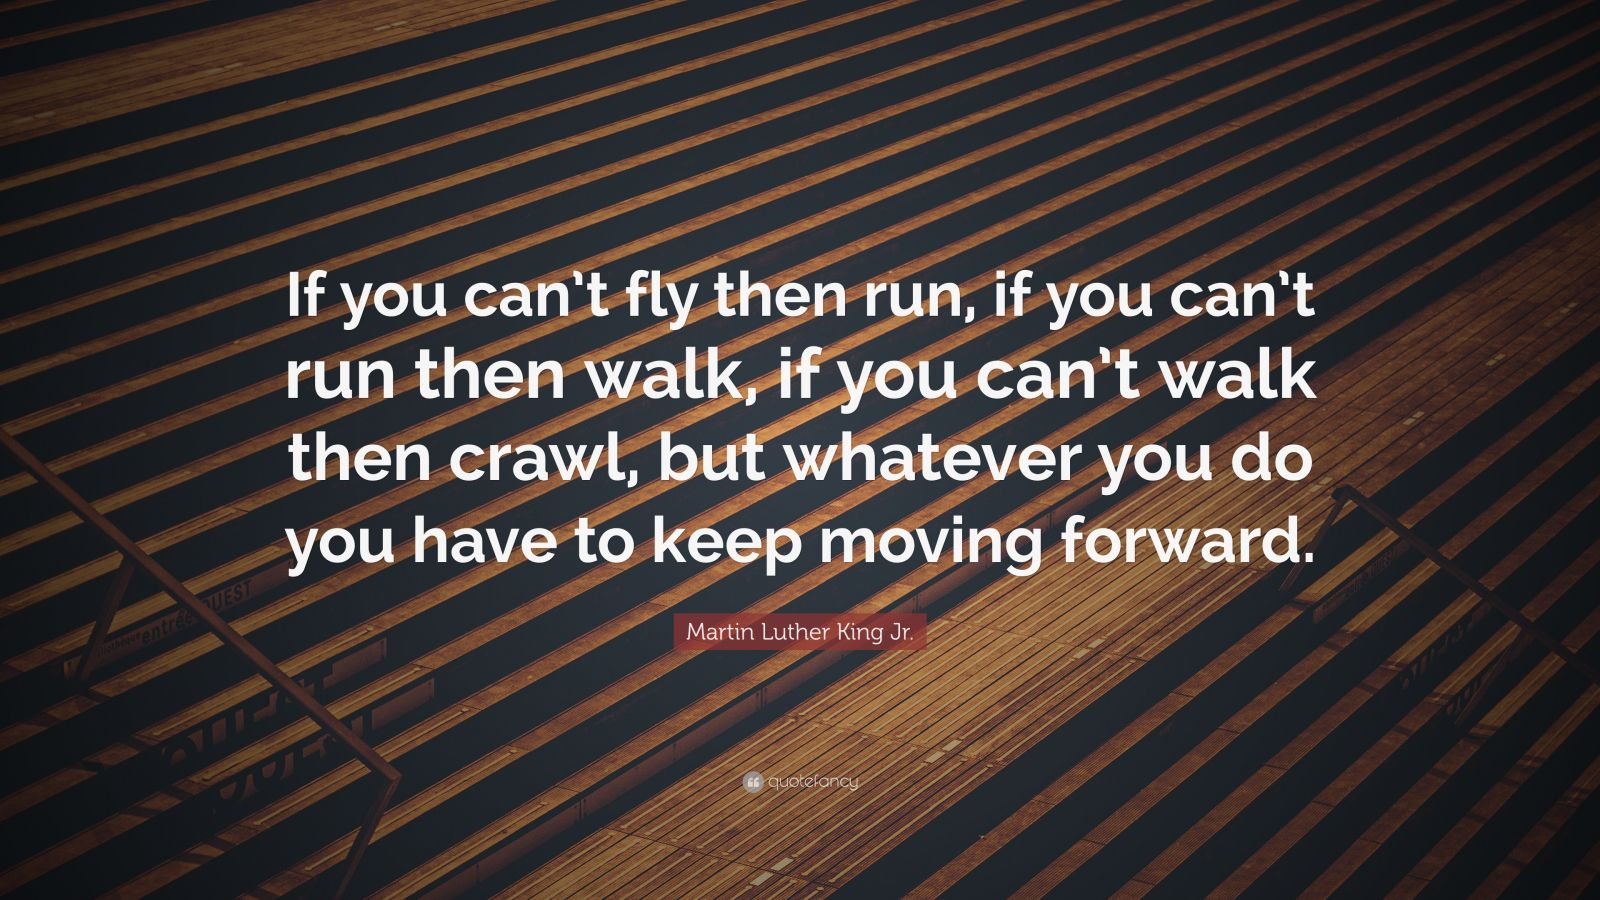 Wallpaper Motivational Quotes 42 Perseverance Quotes 36 Wallpapers Quotefancy